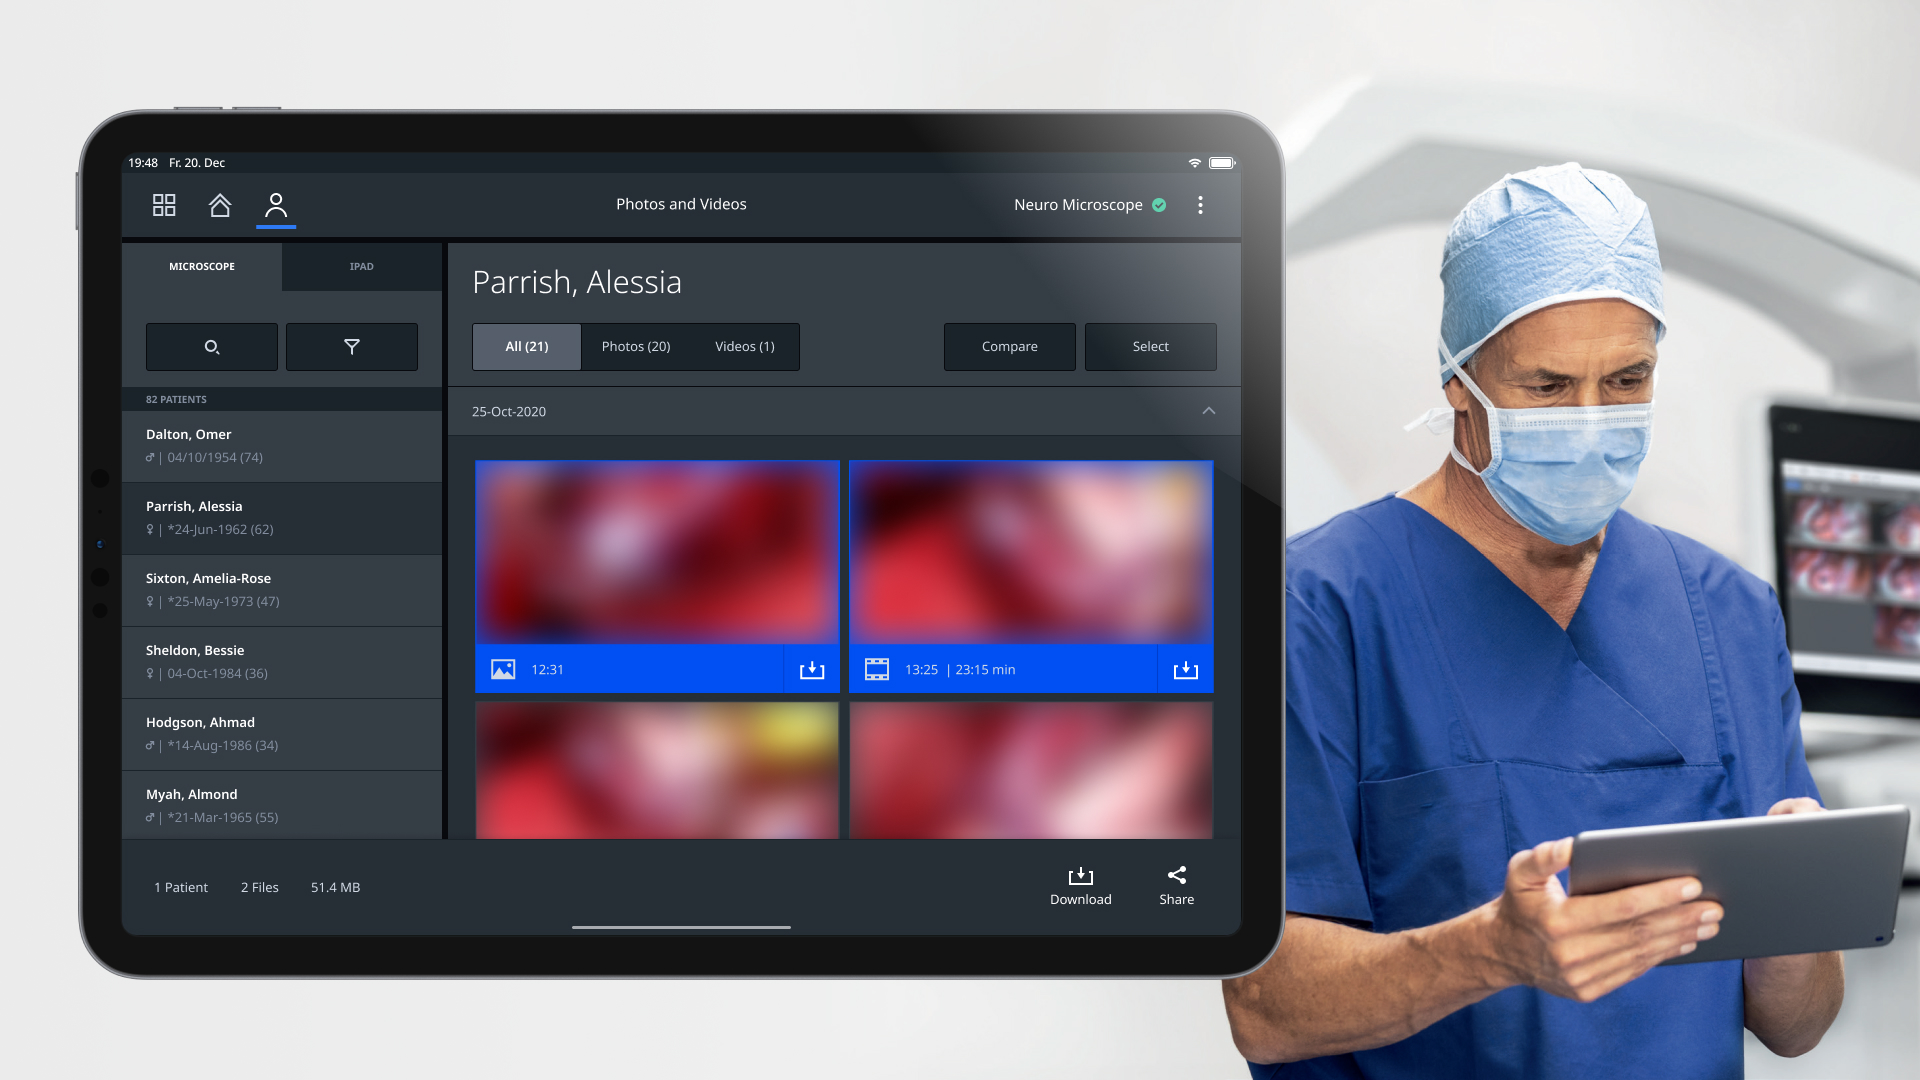 Neurosurgeon uses iPad app to download photos and videos from the microscope